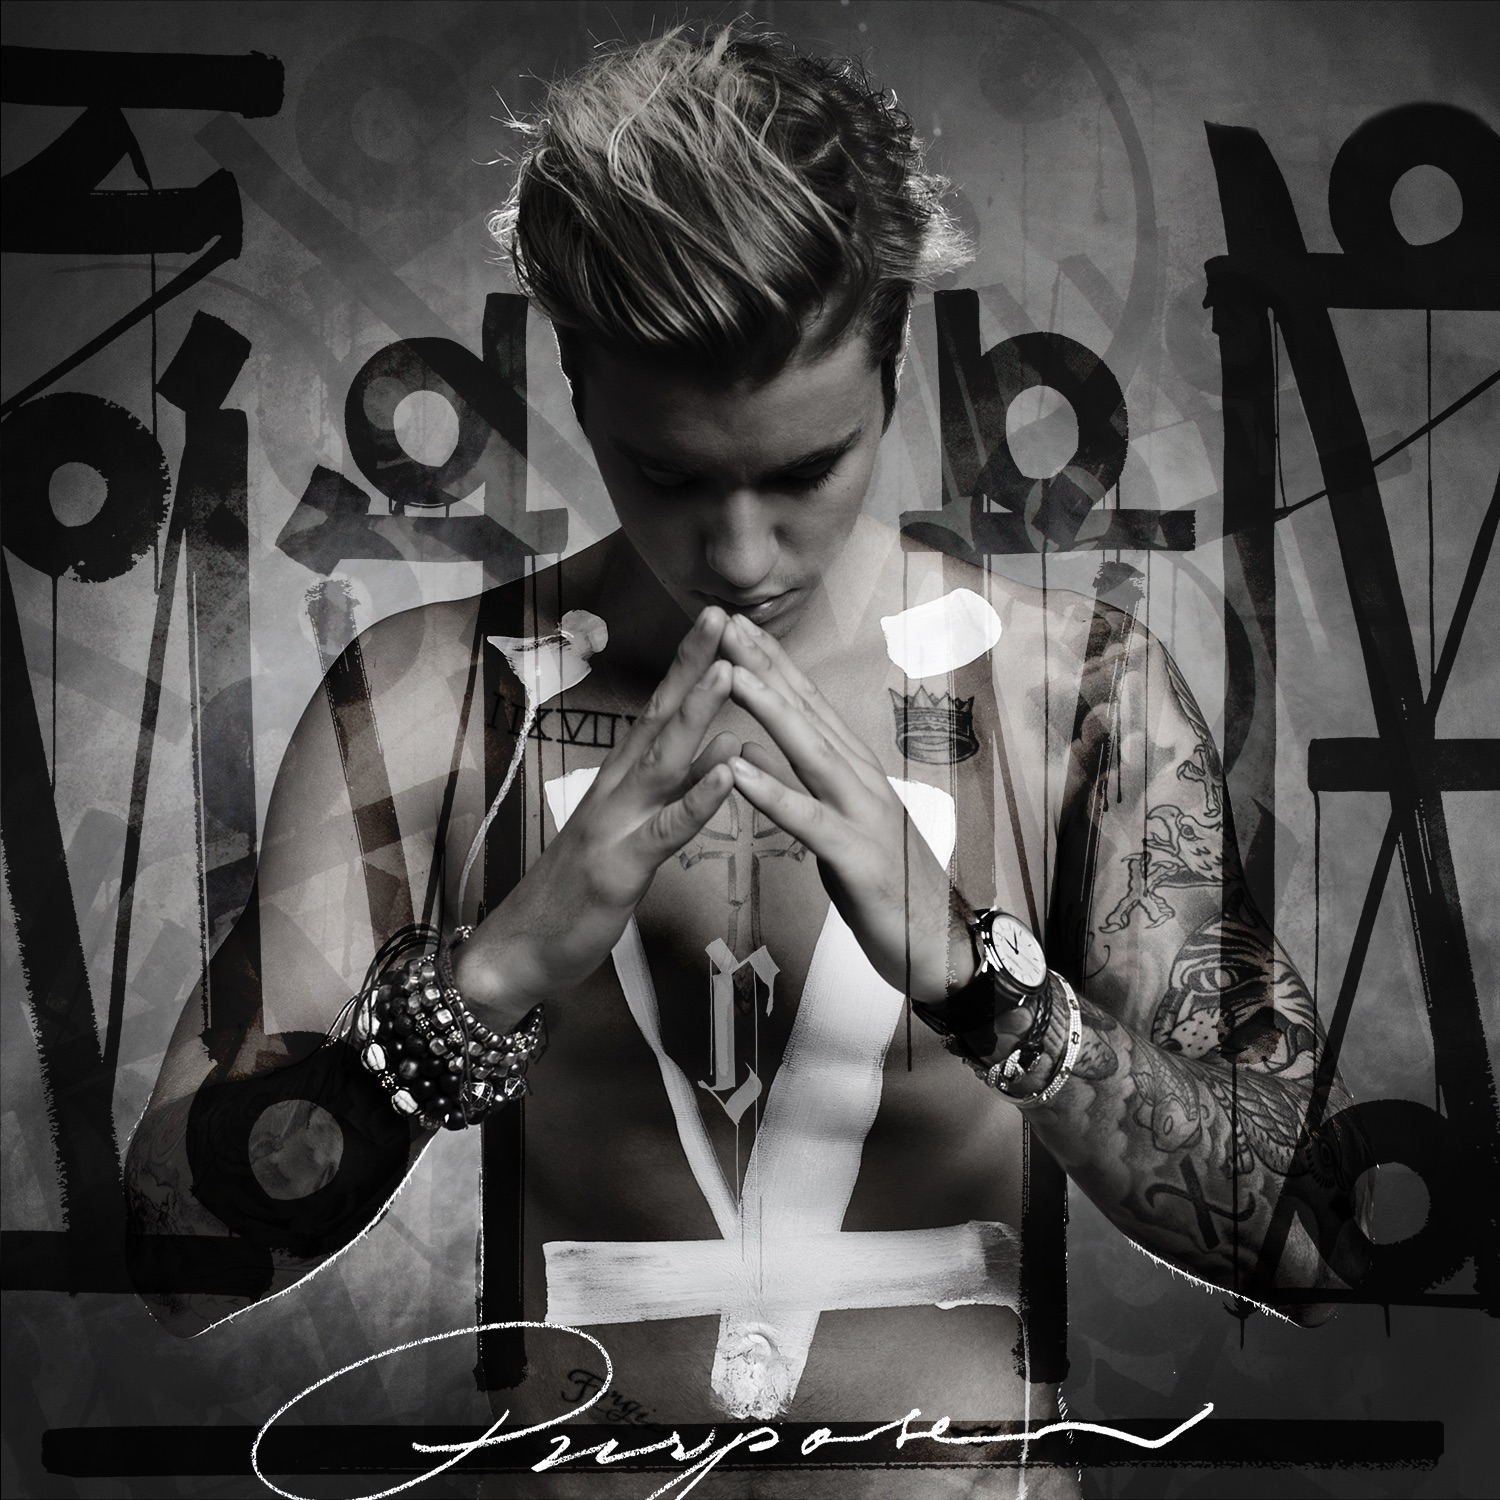 Justin Bieber - Purpose (Deluxe Version)   Lou is a Cookie Music